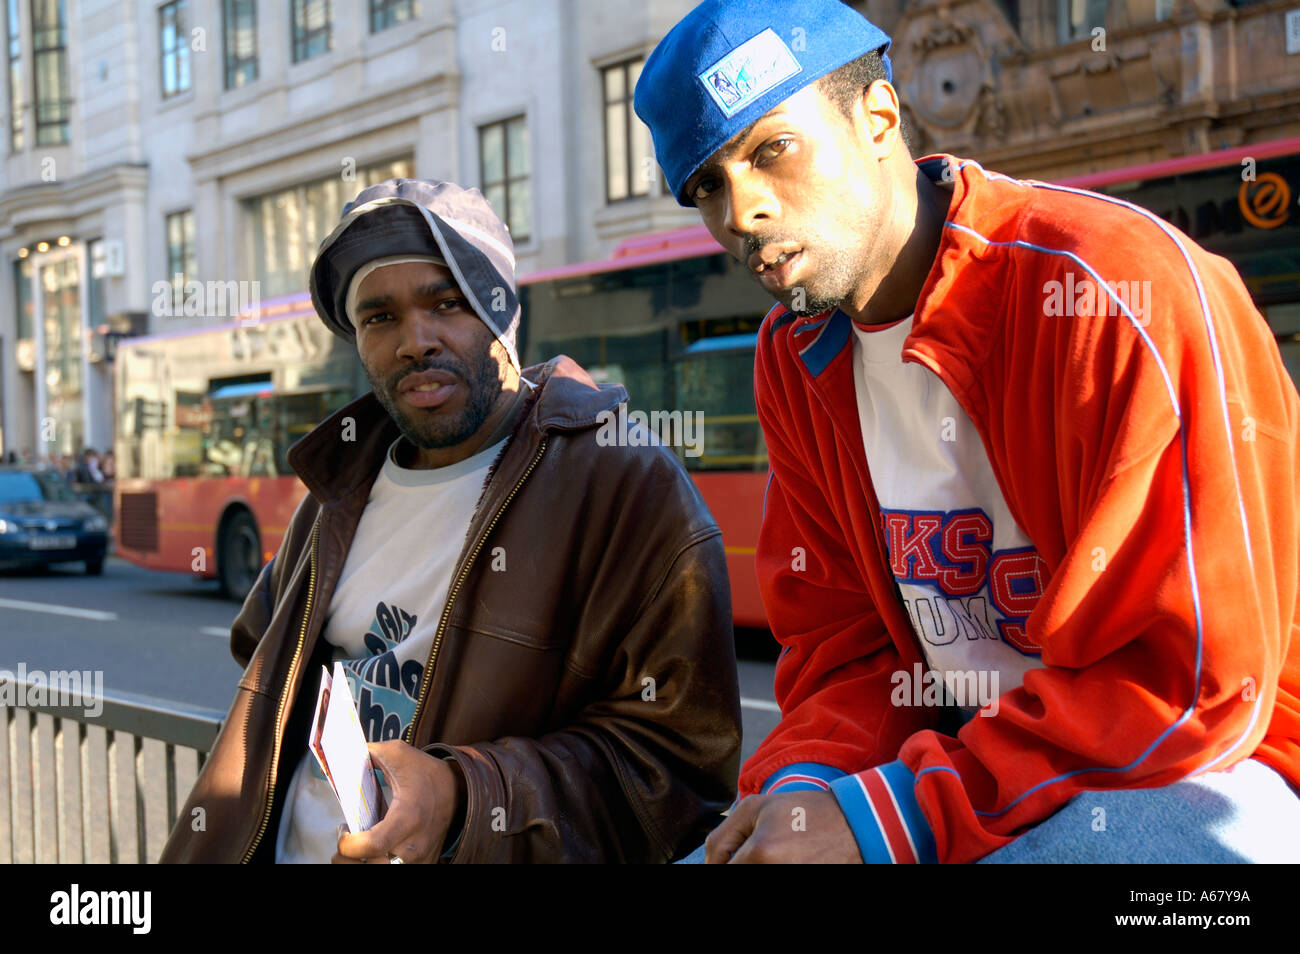 Rap Artists Hanging Out In Oxford Street Stock Photo Alamy